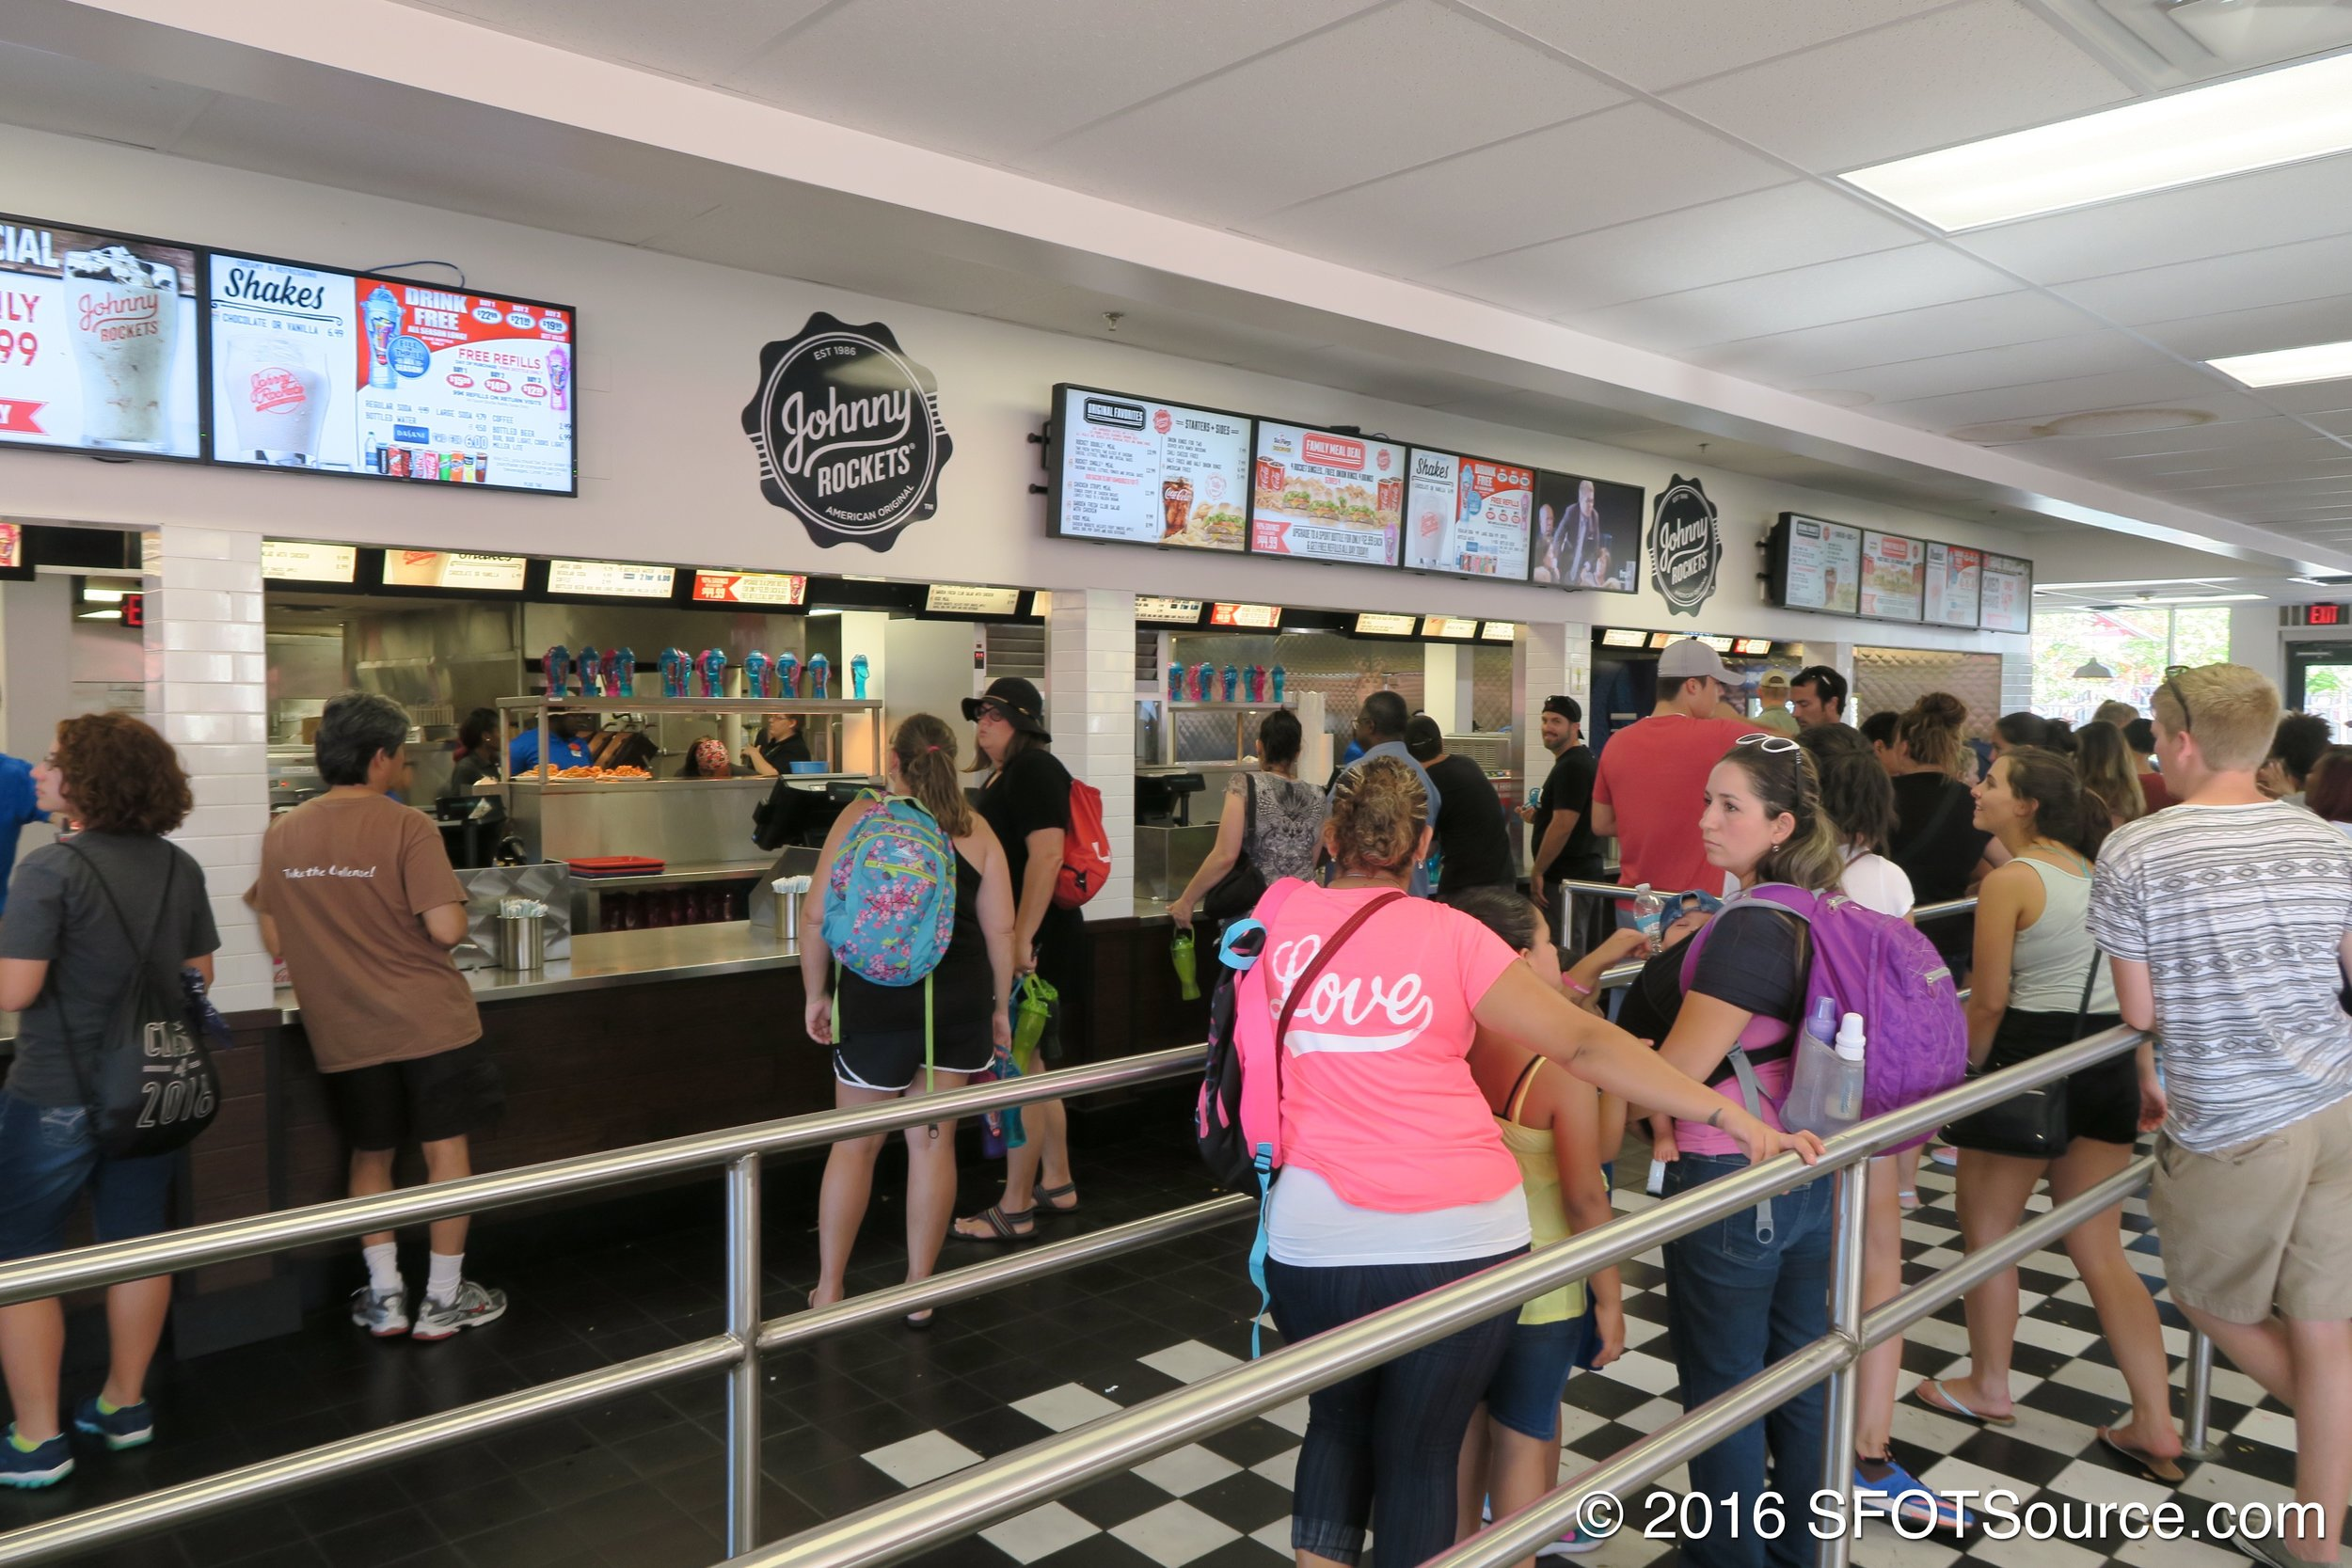 Guests order and purchase food at this counter.